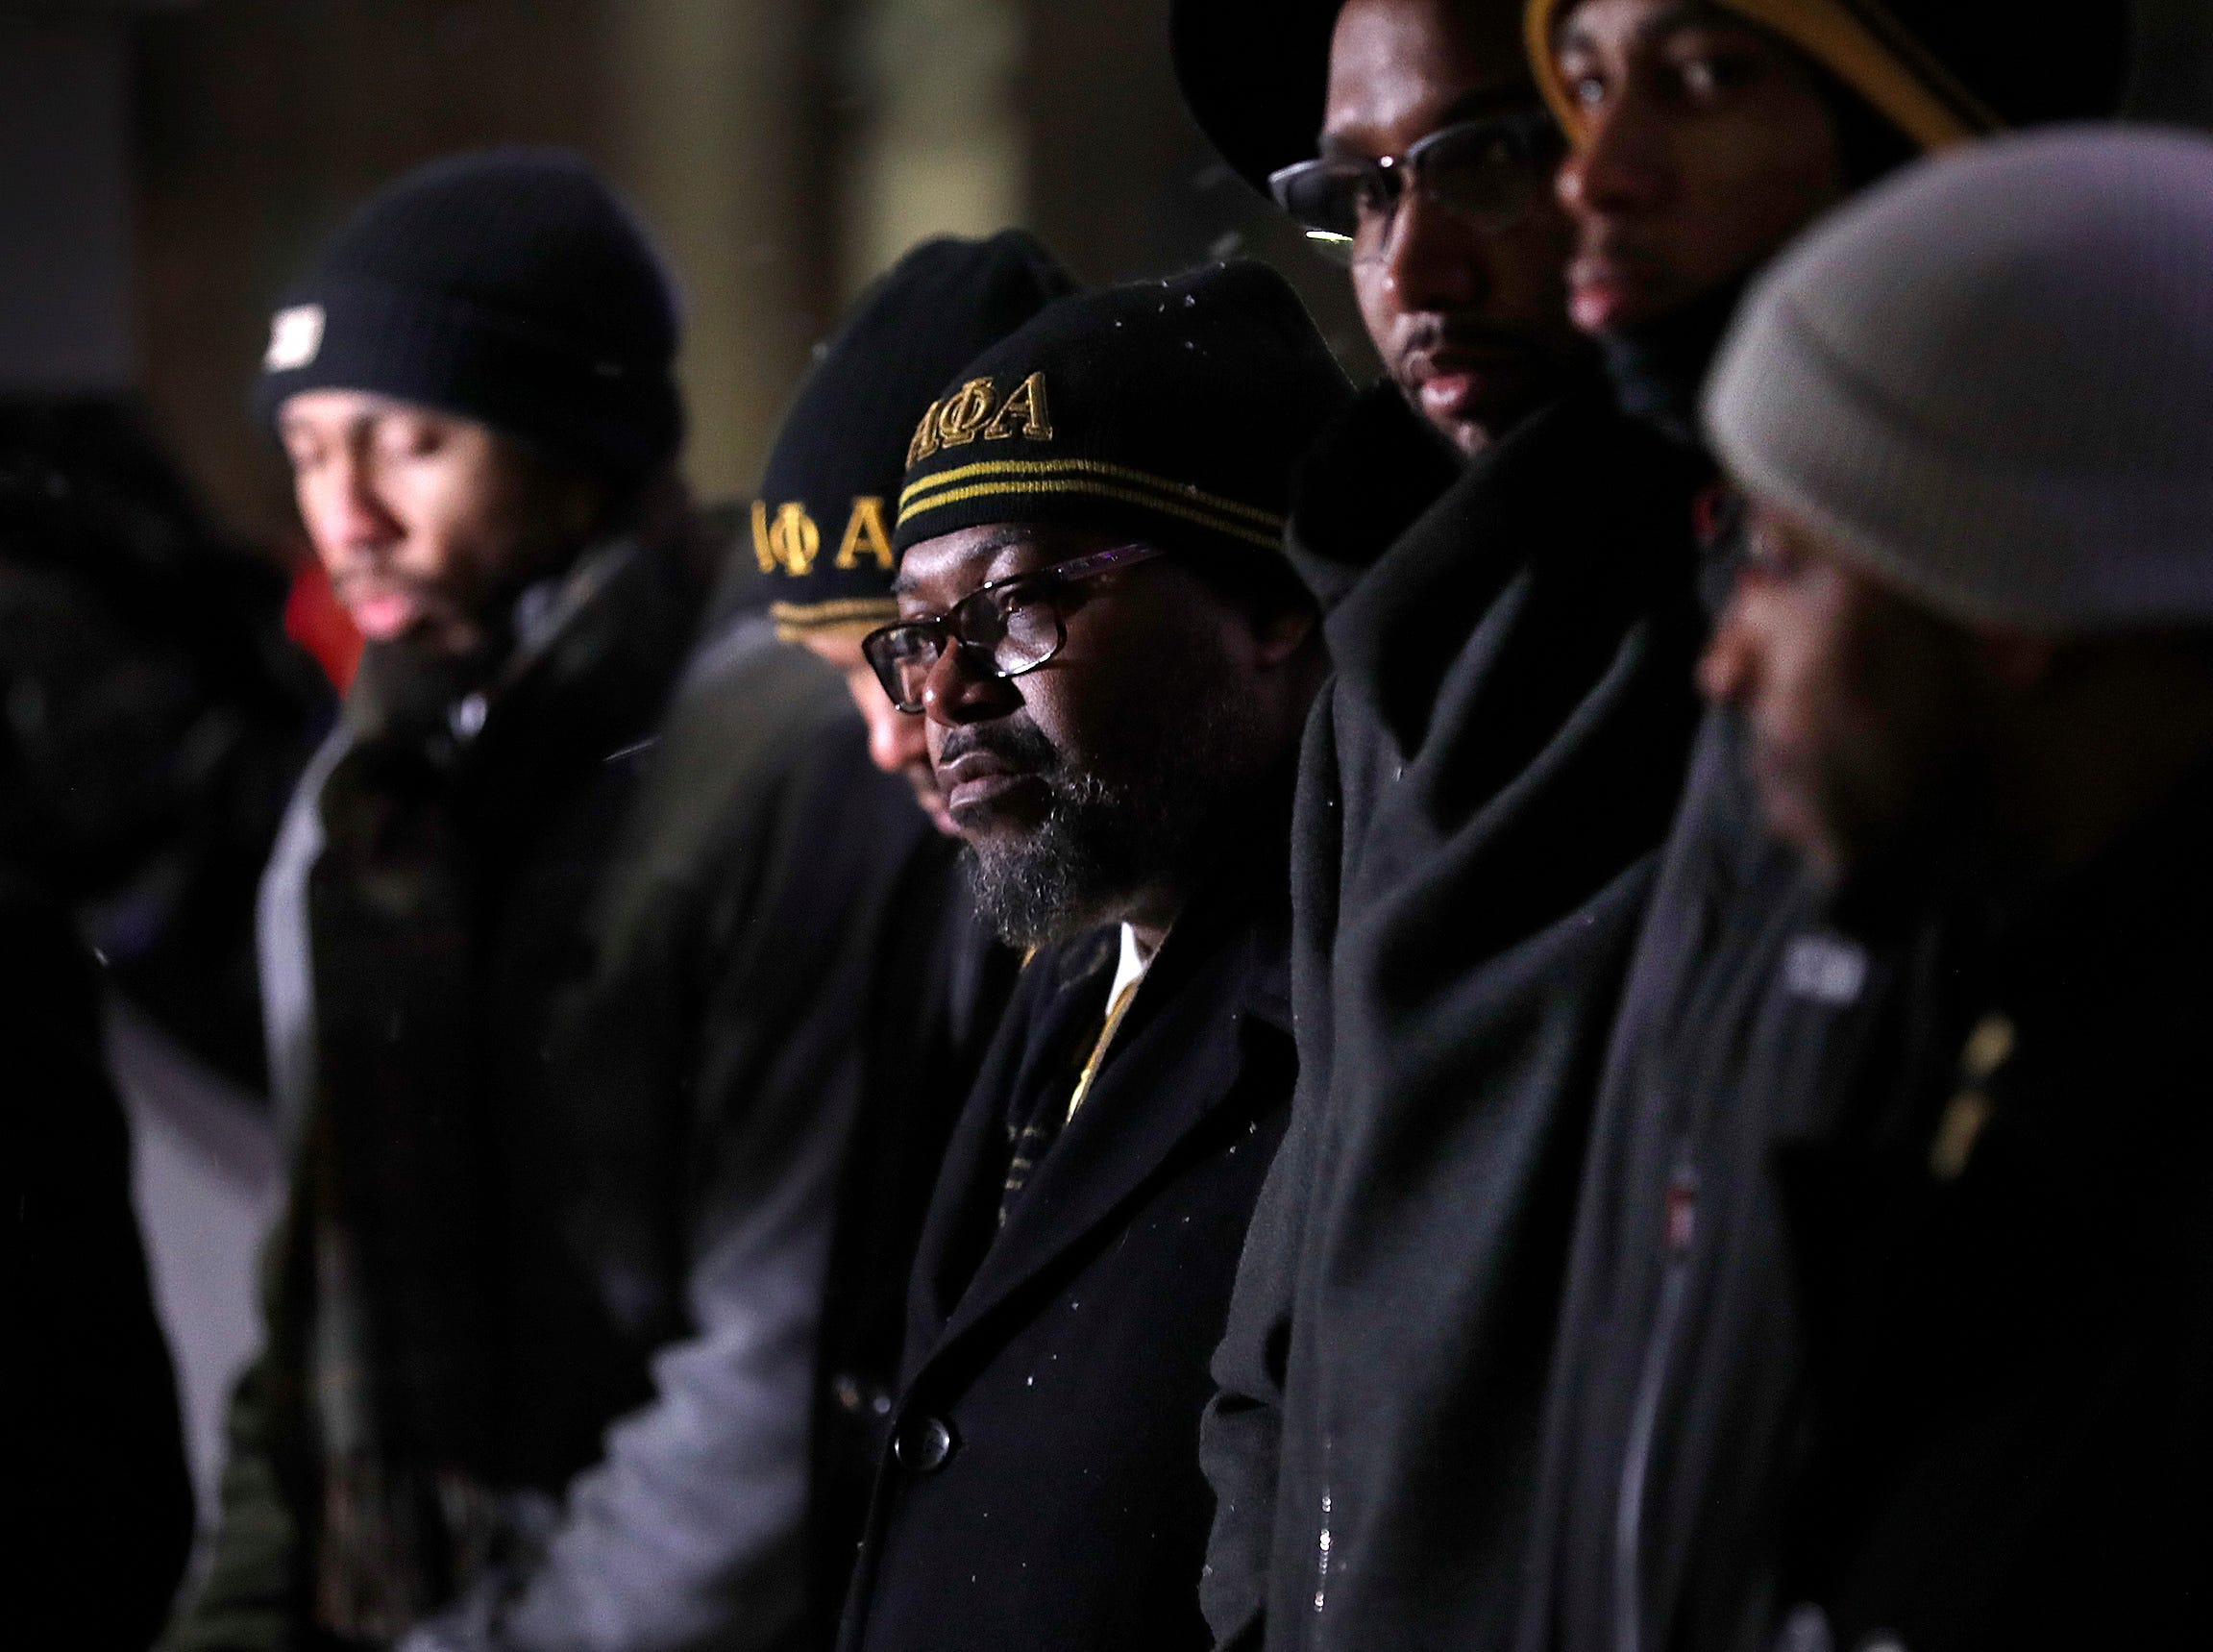 Members of the Alpha Phi Alpha stand by the wreath as the Indiana Civil Rights Commission hosted a commemorative Wreath Placing Ceremony at the Indiana War Memorial on Wednesday, Jan. 9, 2019.